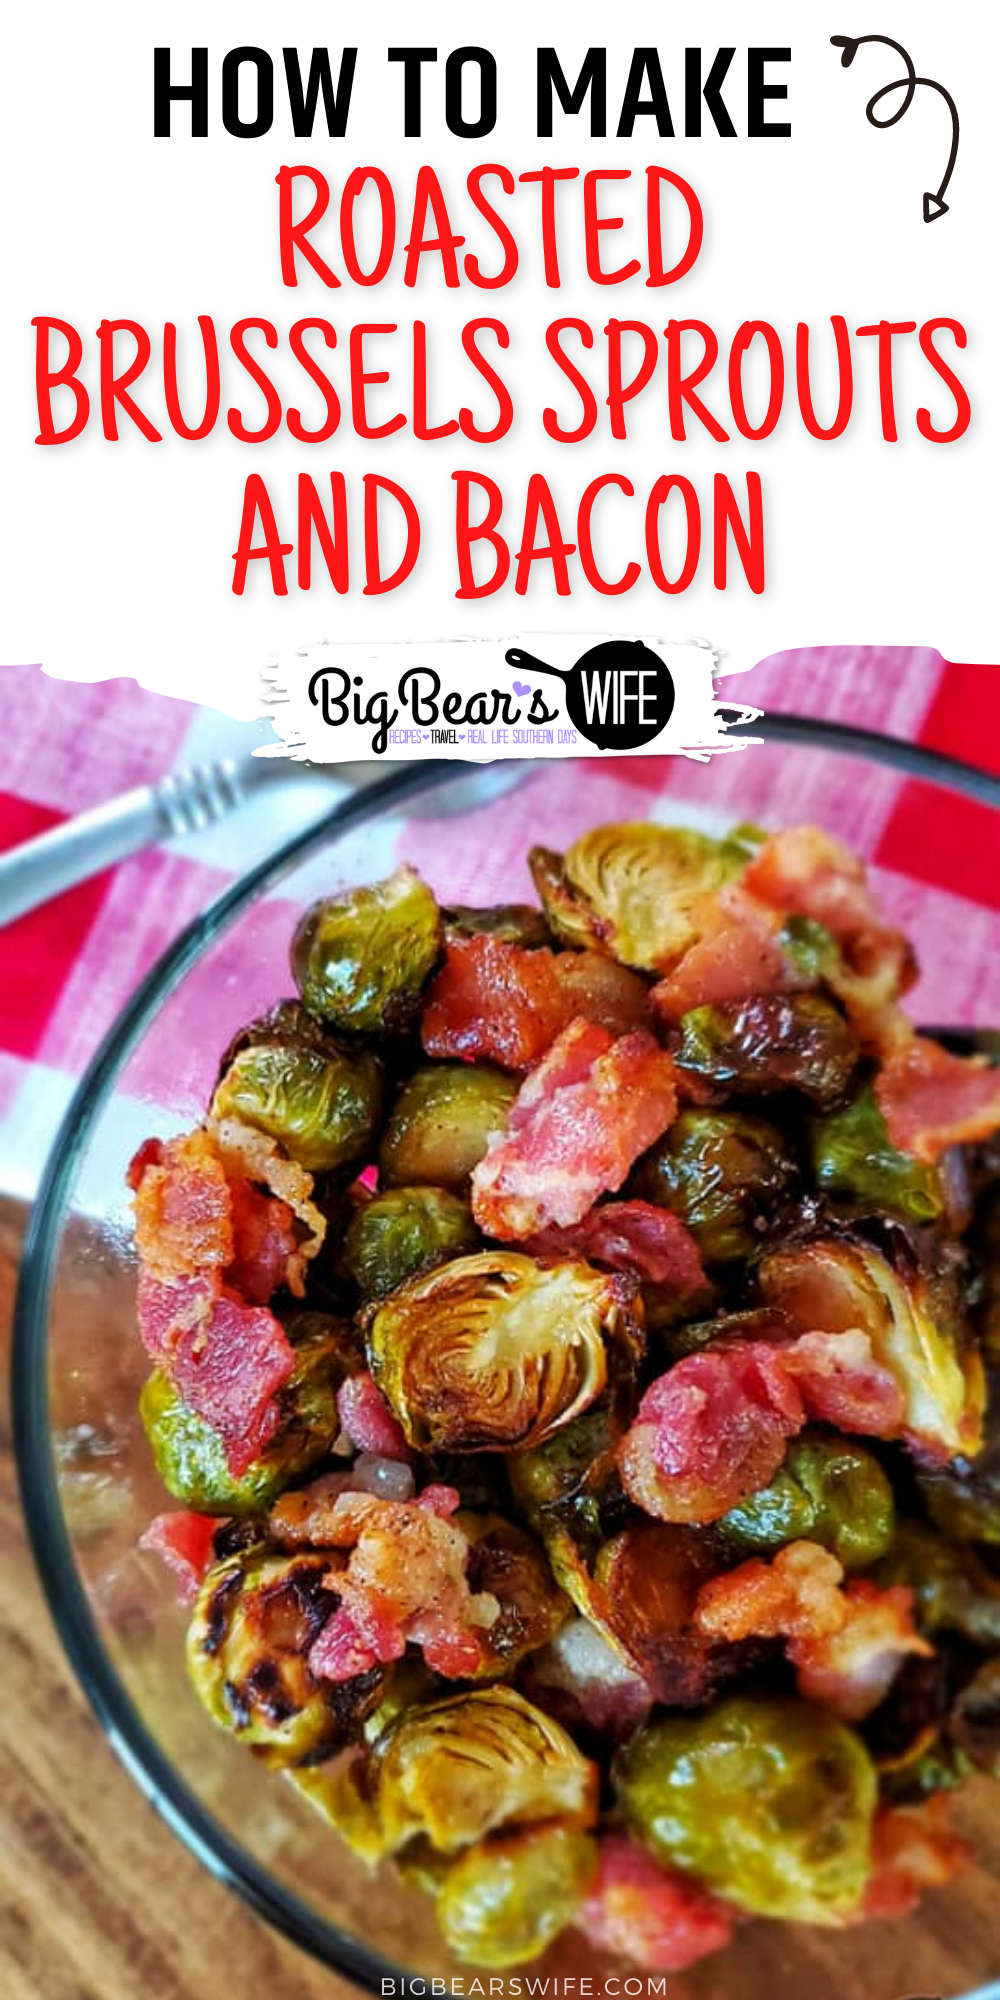 Roasted Brussels Sprouts and Bacon are a great side dish and perfect for weeknight or weekend dinners! In this post I'll teach you how to pick the best brussels sprouts and how to make a Roasted Brussels Sprouts and Bacon dish that you'll love! These sprouts only take about 30 minutes in the oven and they're so good! via @bigbearswife